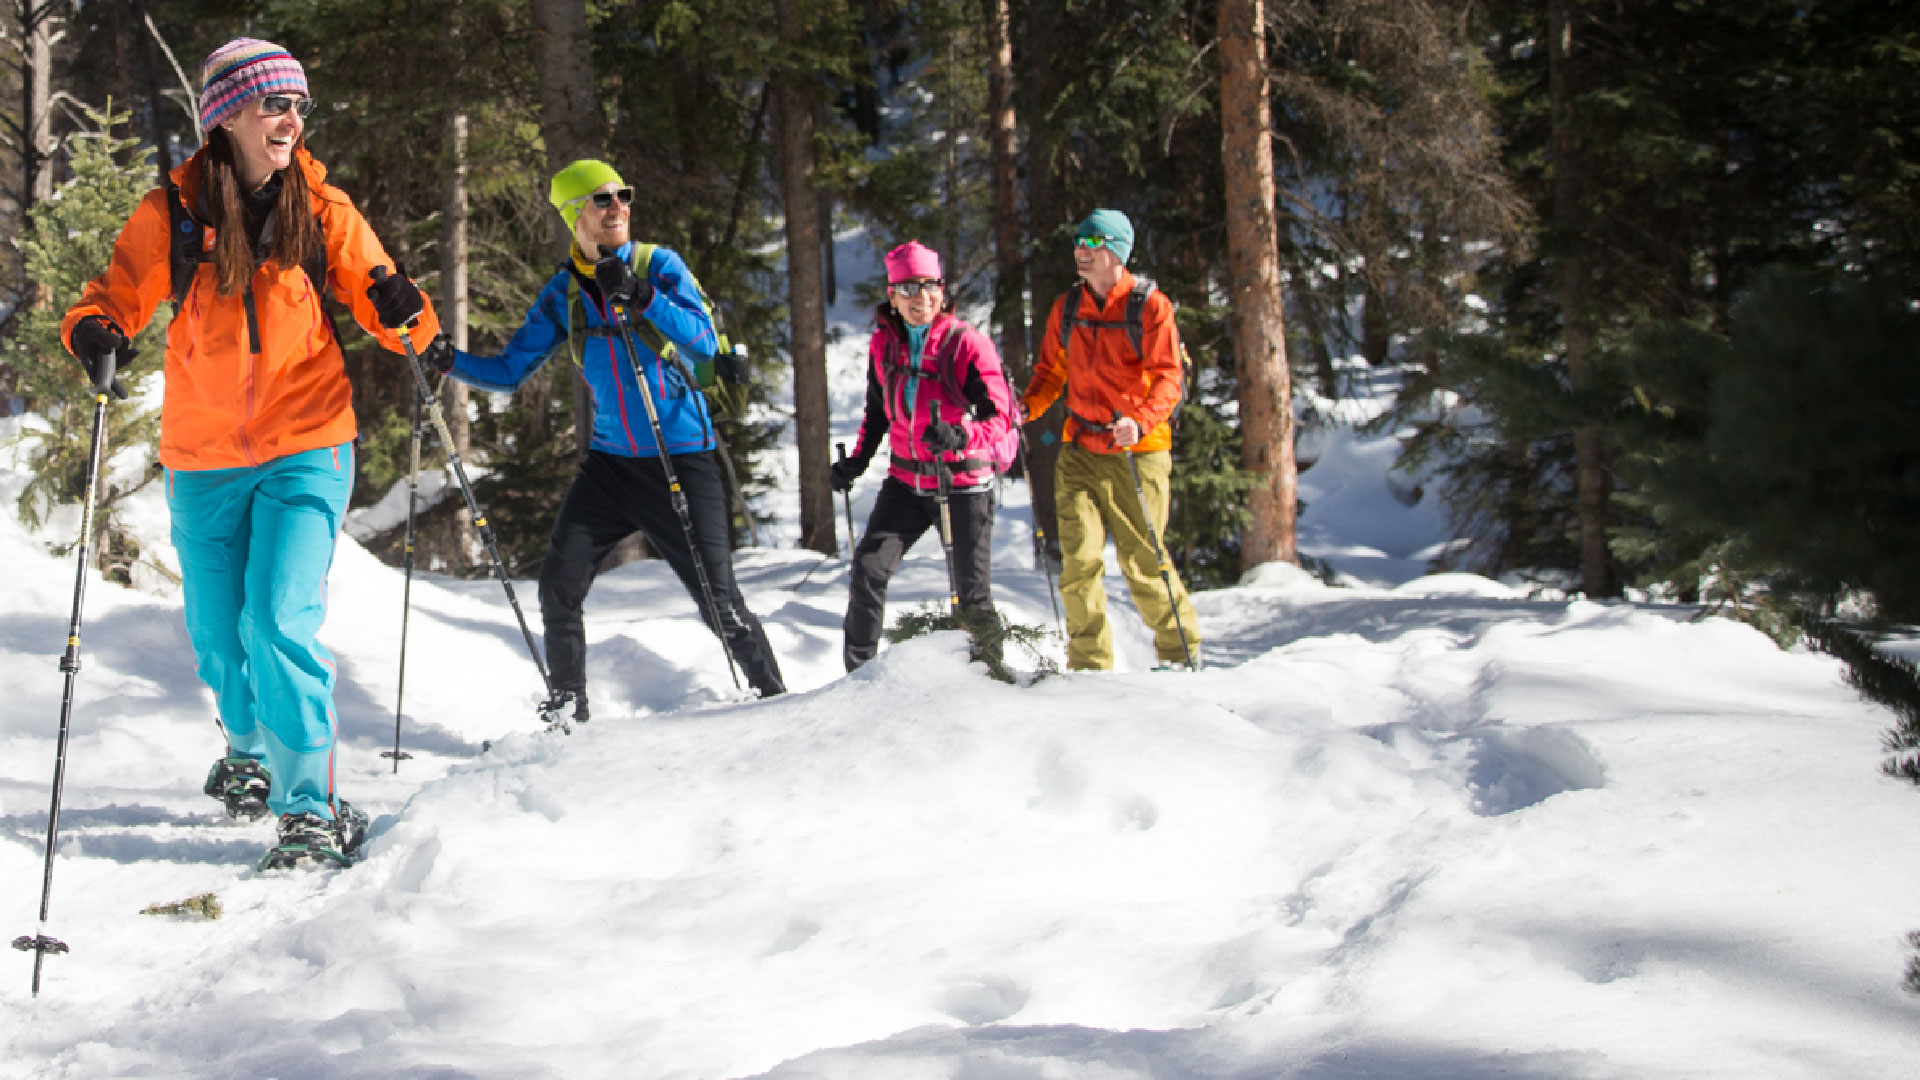 Guided Backcountry Snowshoeing Tour from White Pine Touring in Park City, UT.